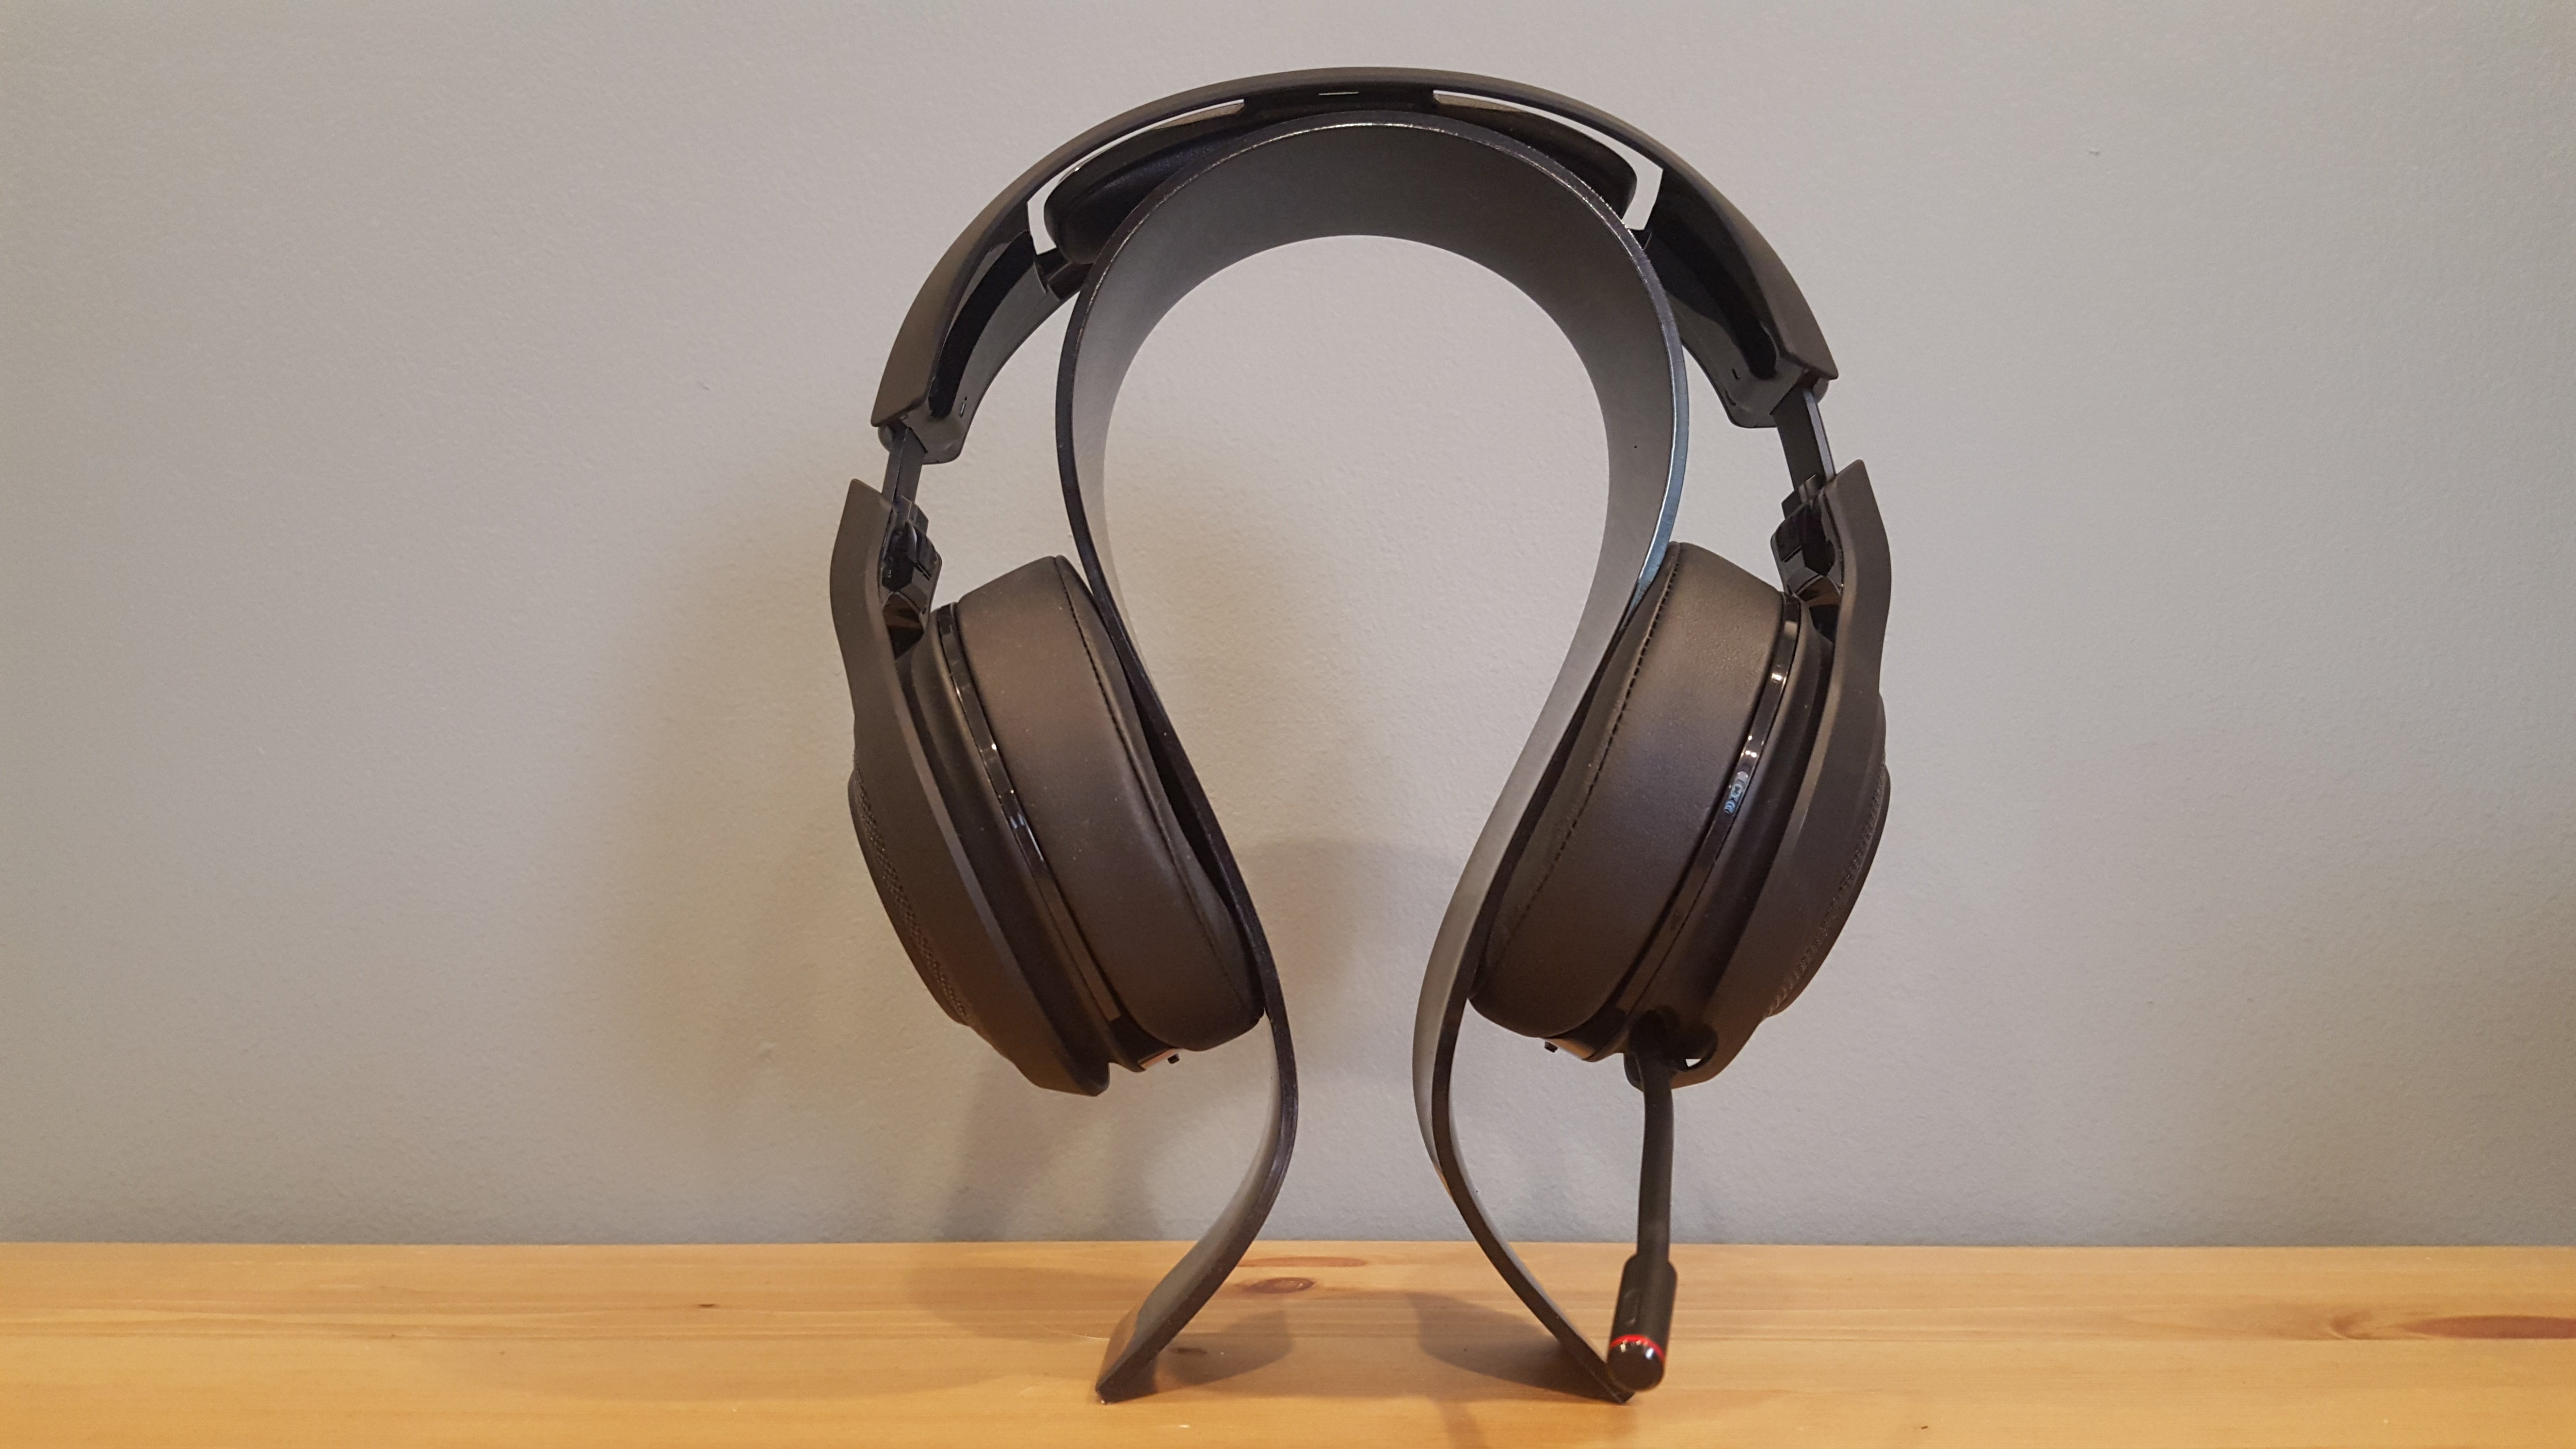 Razer Man O' War review: This pillowy headset is almost as